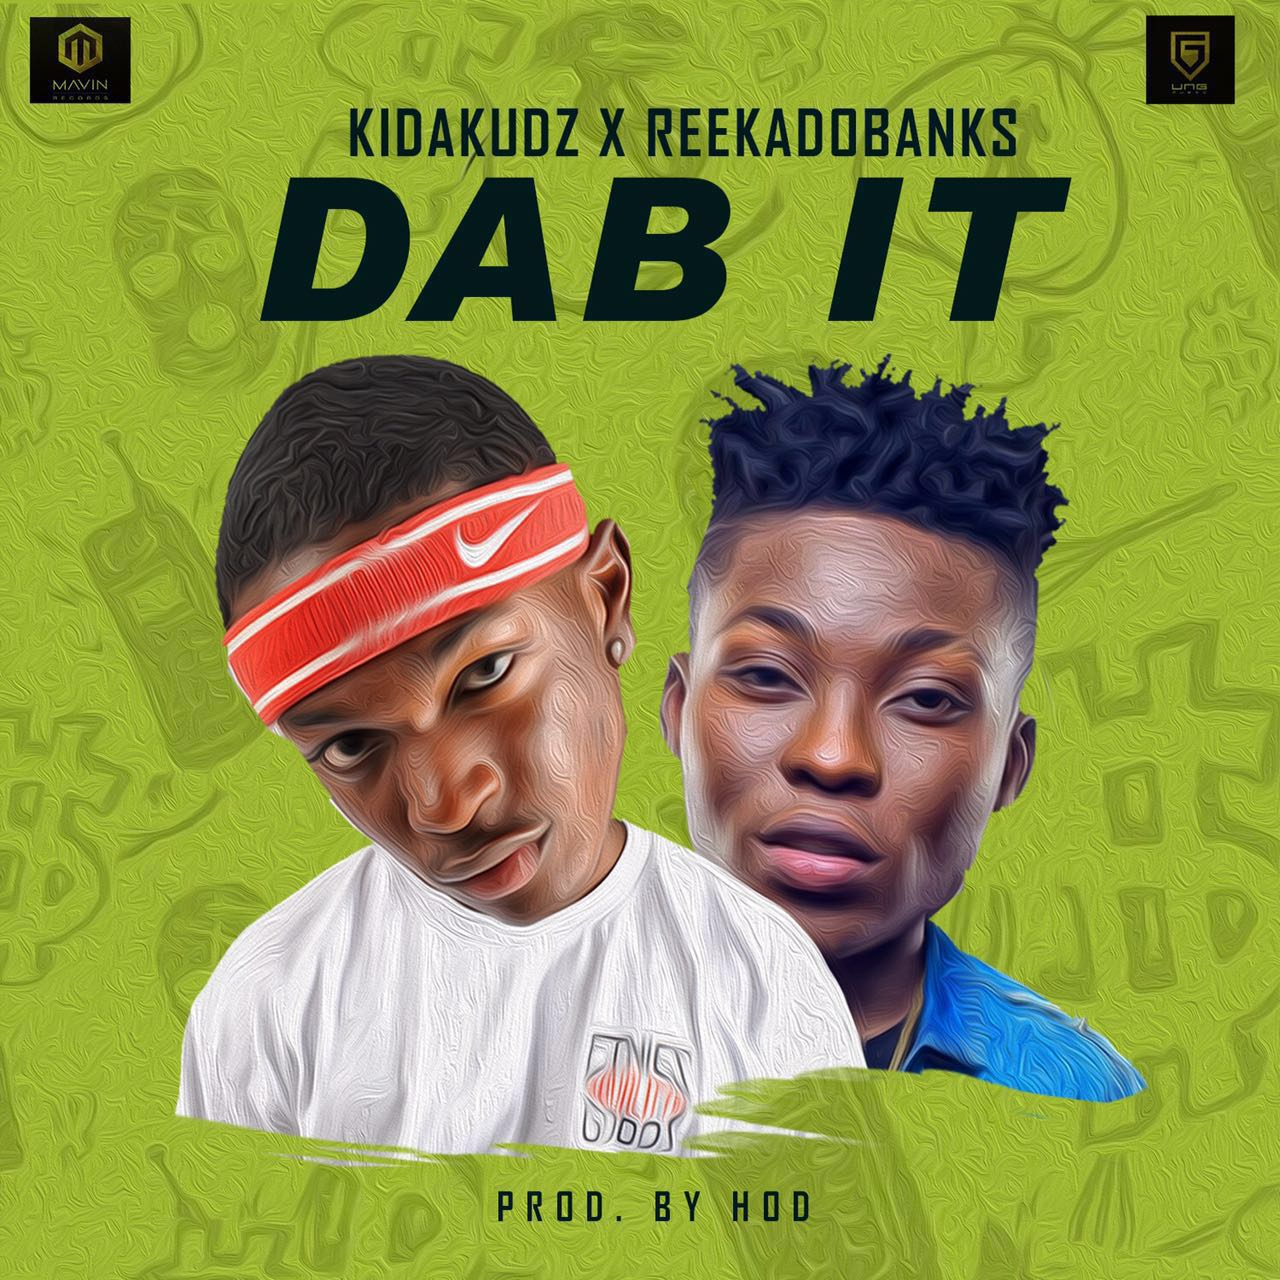 Kida Kudz - Dab It ft. Reekado Banks